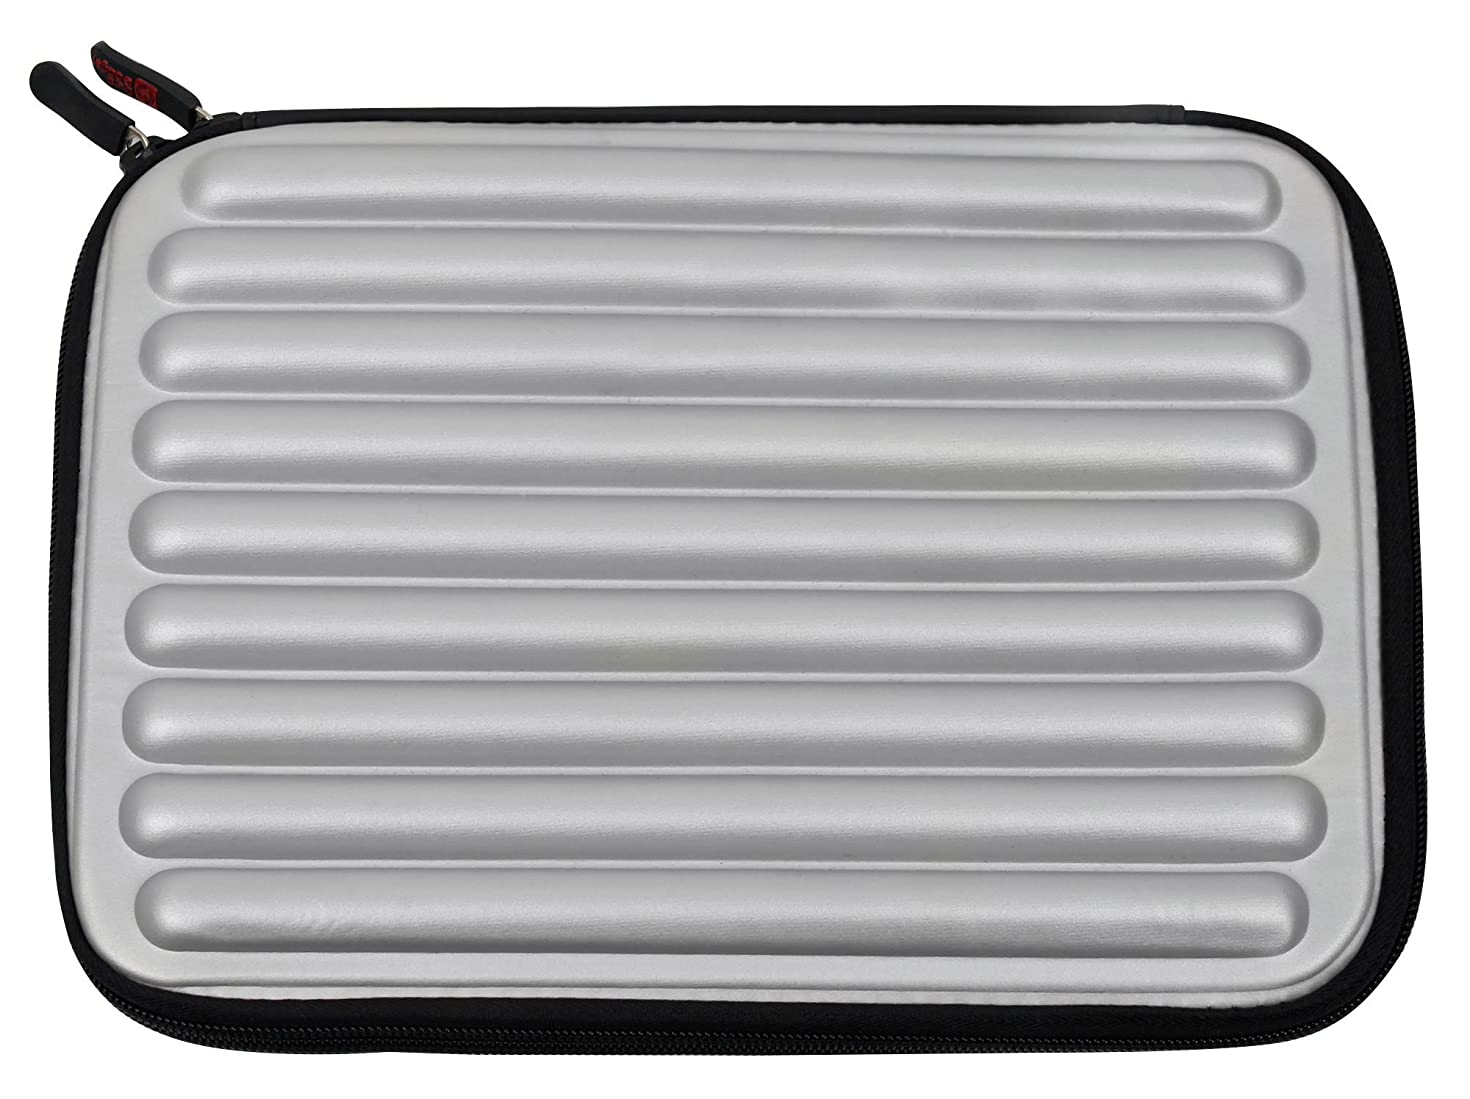 DURAGADGET Silver Laptop Sleeve/Case in Shock-Absorbing & Water-Resistant Memory Foam - Compatible with The Lenovo Yoga 910-13IKB